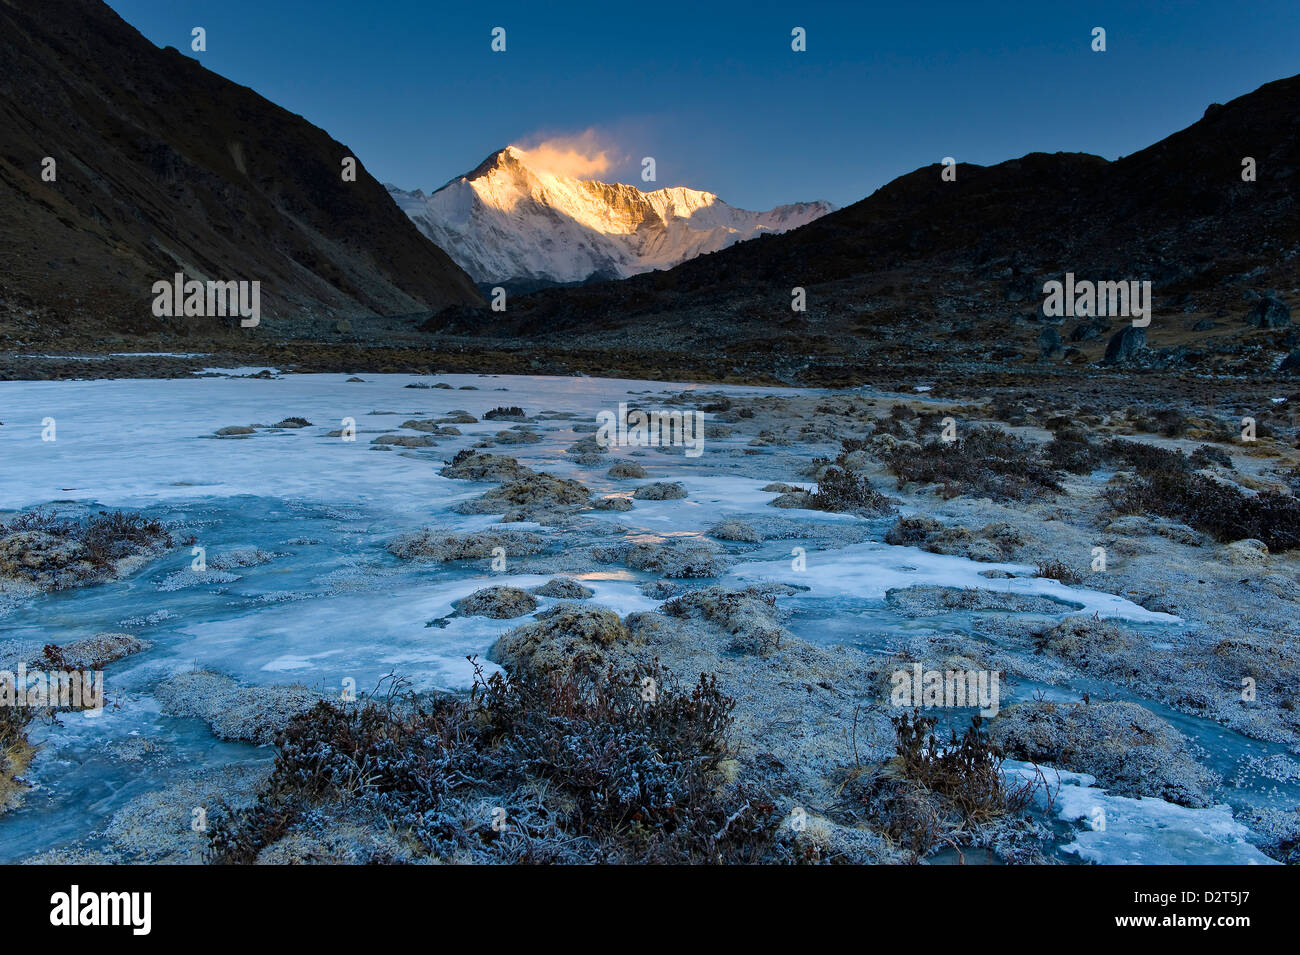 Dudh Pokhari Lake, view towards Cho Oyu, Gokyo, Solu Khumbu (Everest) Region, Nepal, Himalayas, Asia - Stock Image